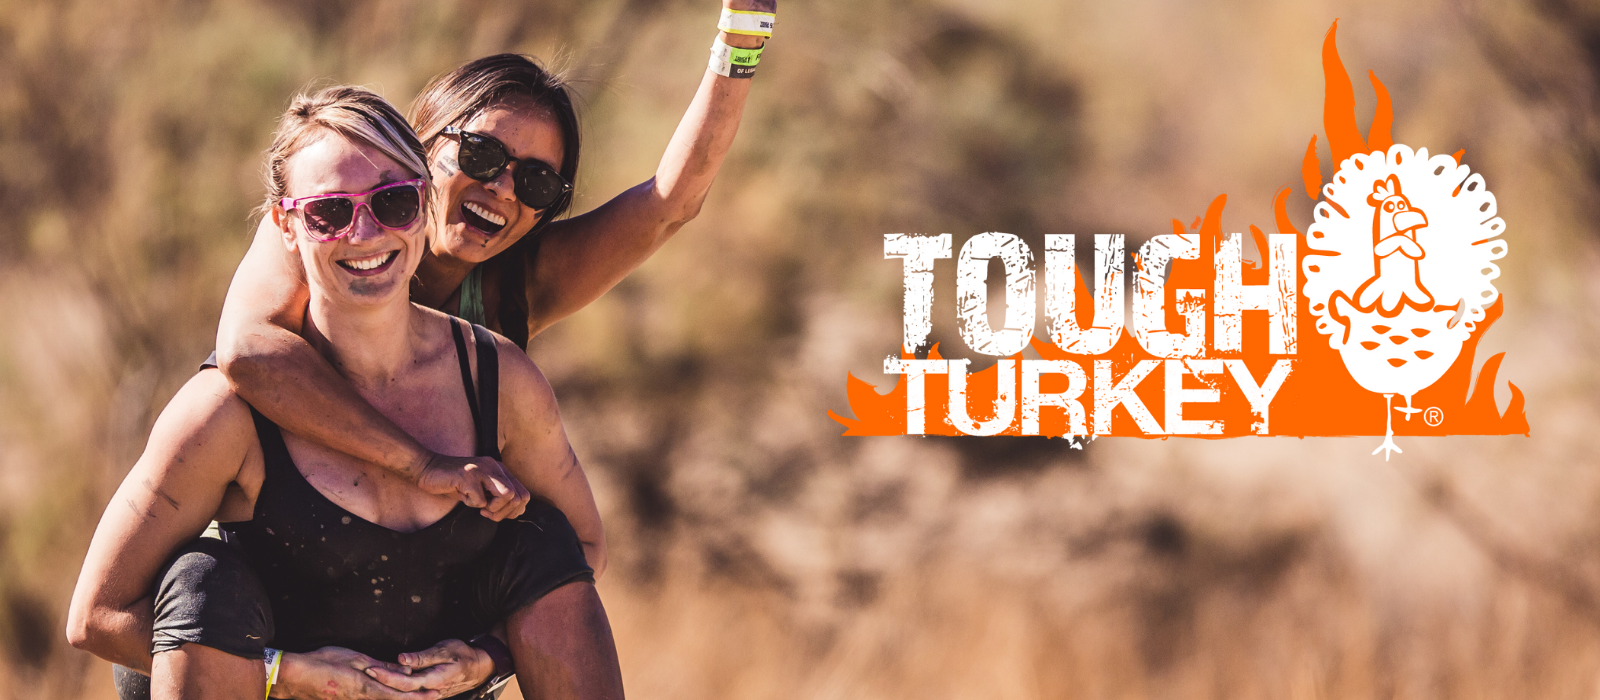 Introducing Tough Turkey, a new way to get moving and give b